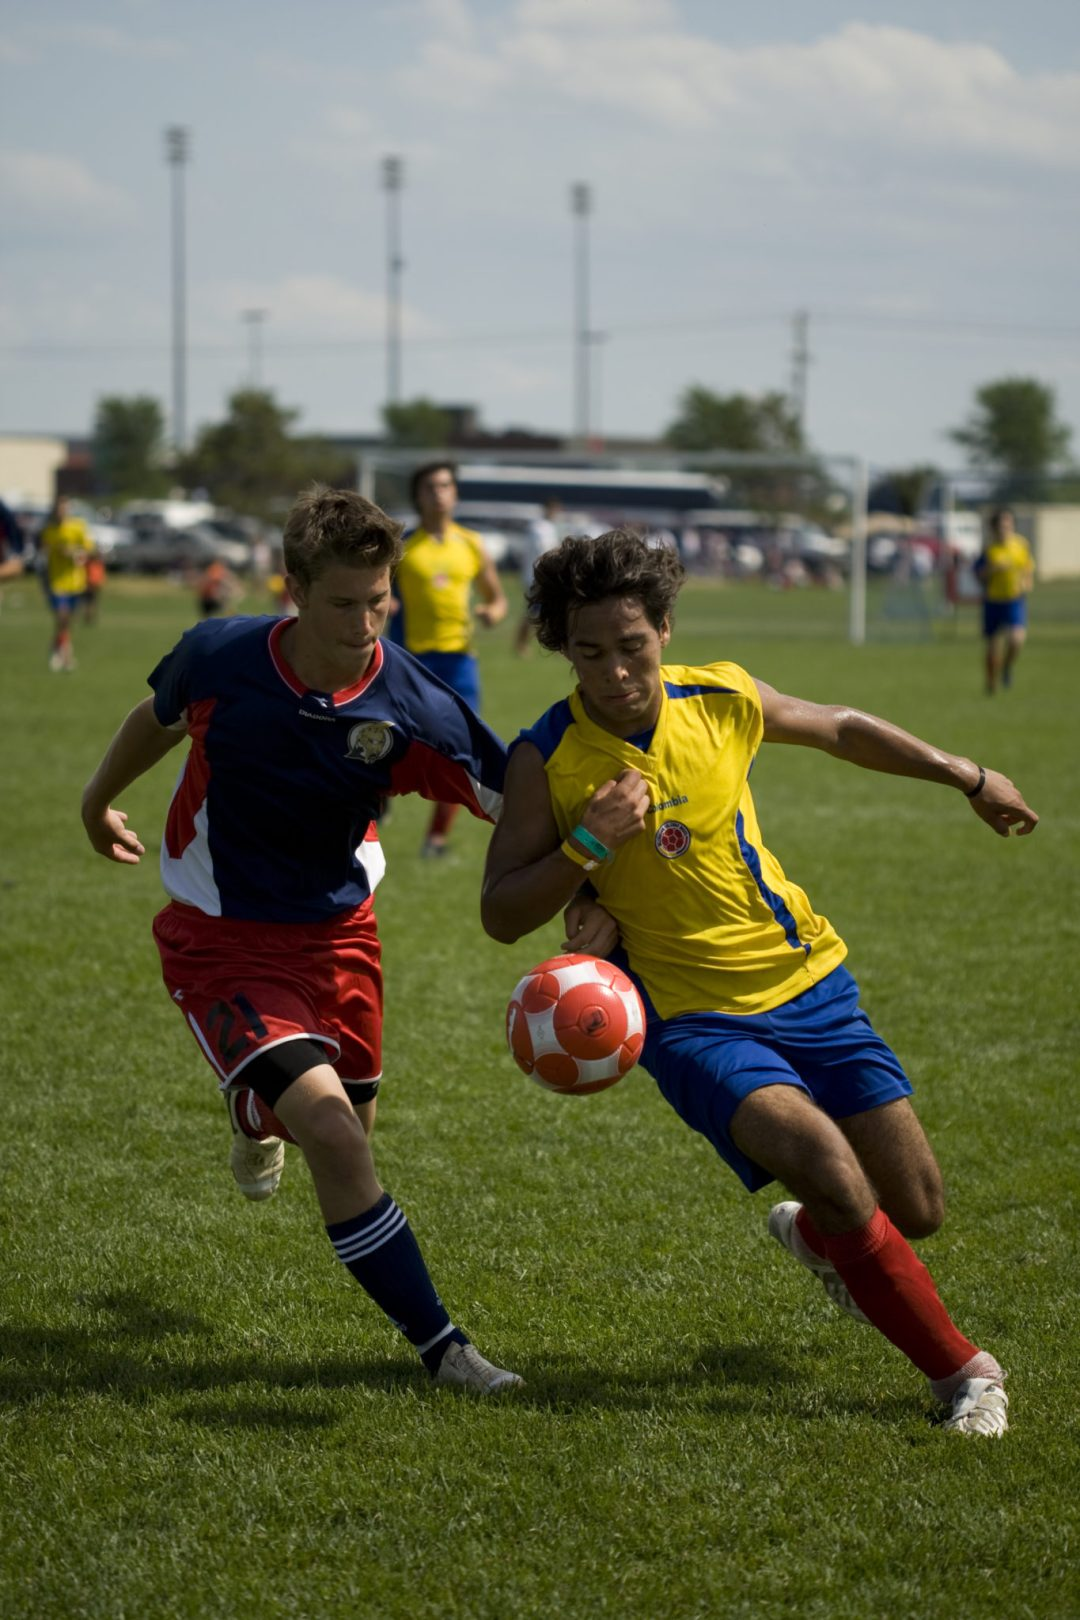 """Soccer at the National Sports Center. Image by <a href=""""http://www.nscsports.org/"""" target=""""_blank"""">National Sports Center</a>"""